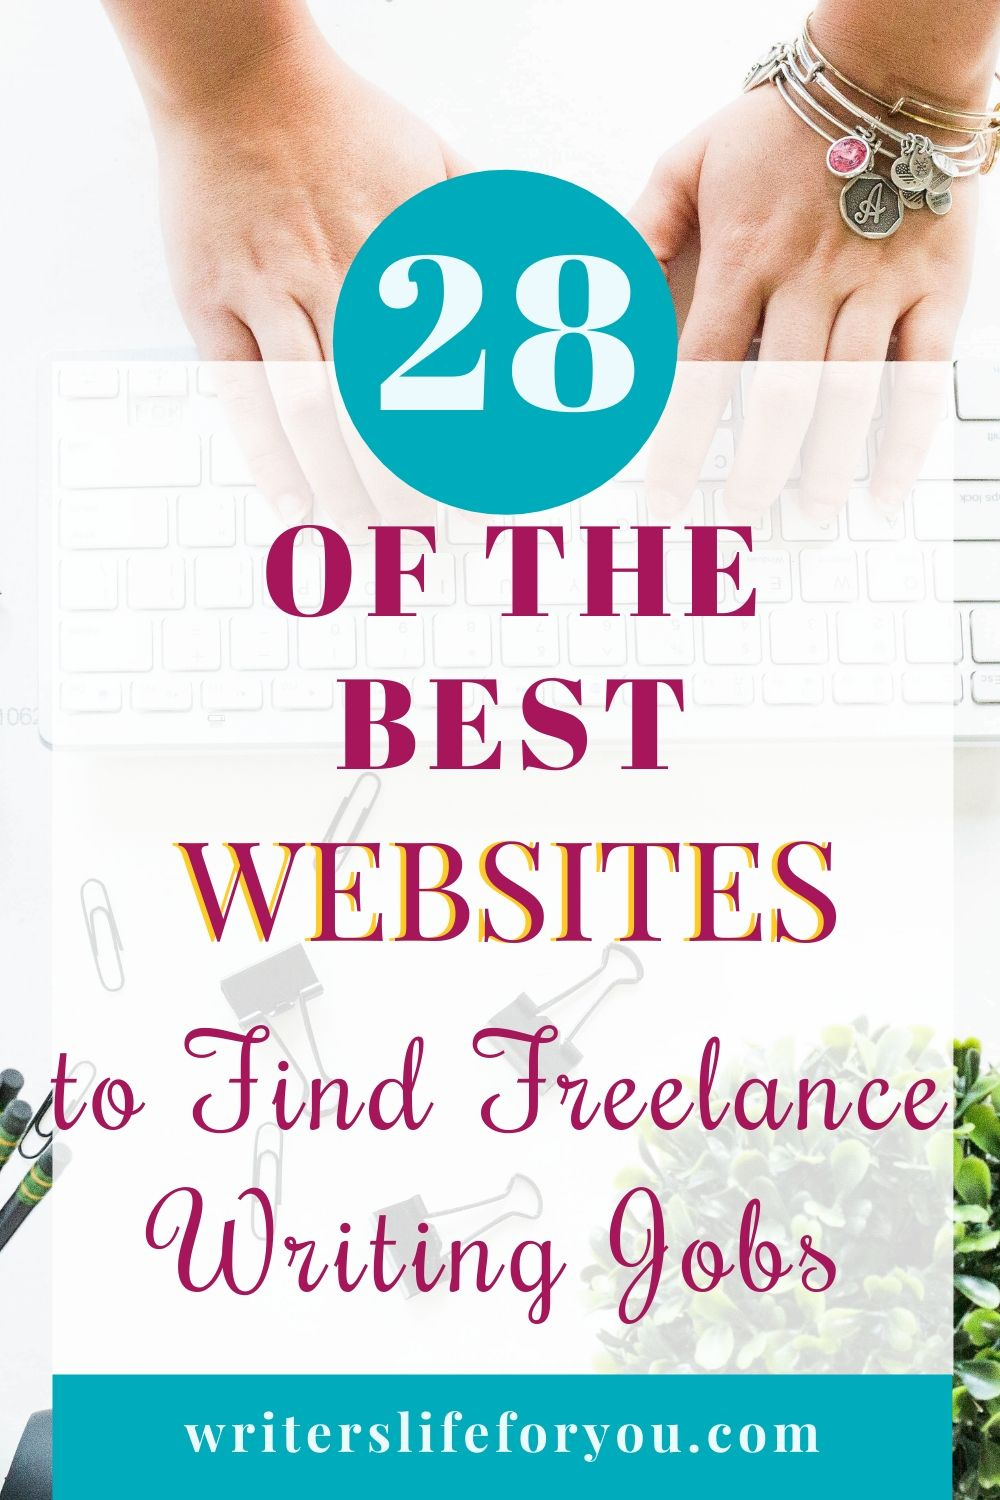 28 Of The Best Websites To Find Freelance Writing Jobs For Beginners Freelance Writing Jobs Writing Jobs Writing Websites